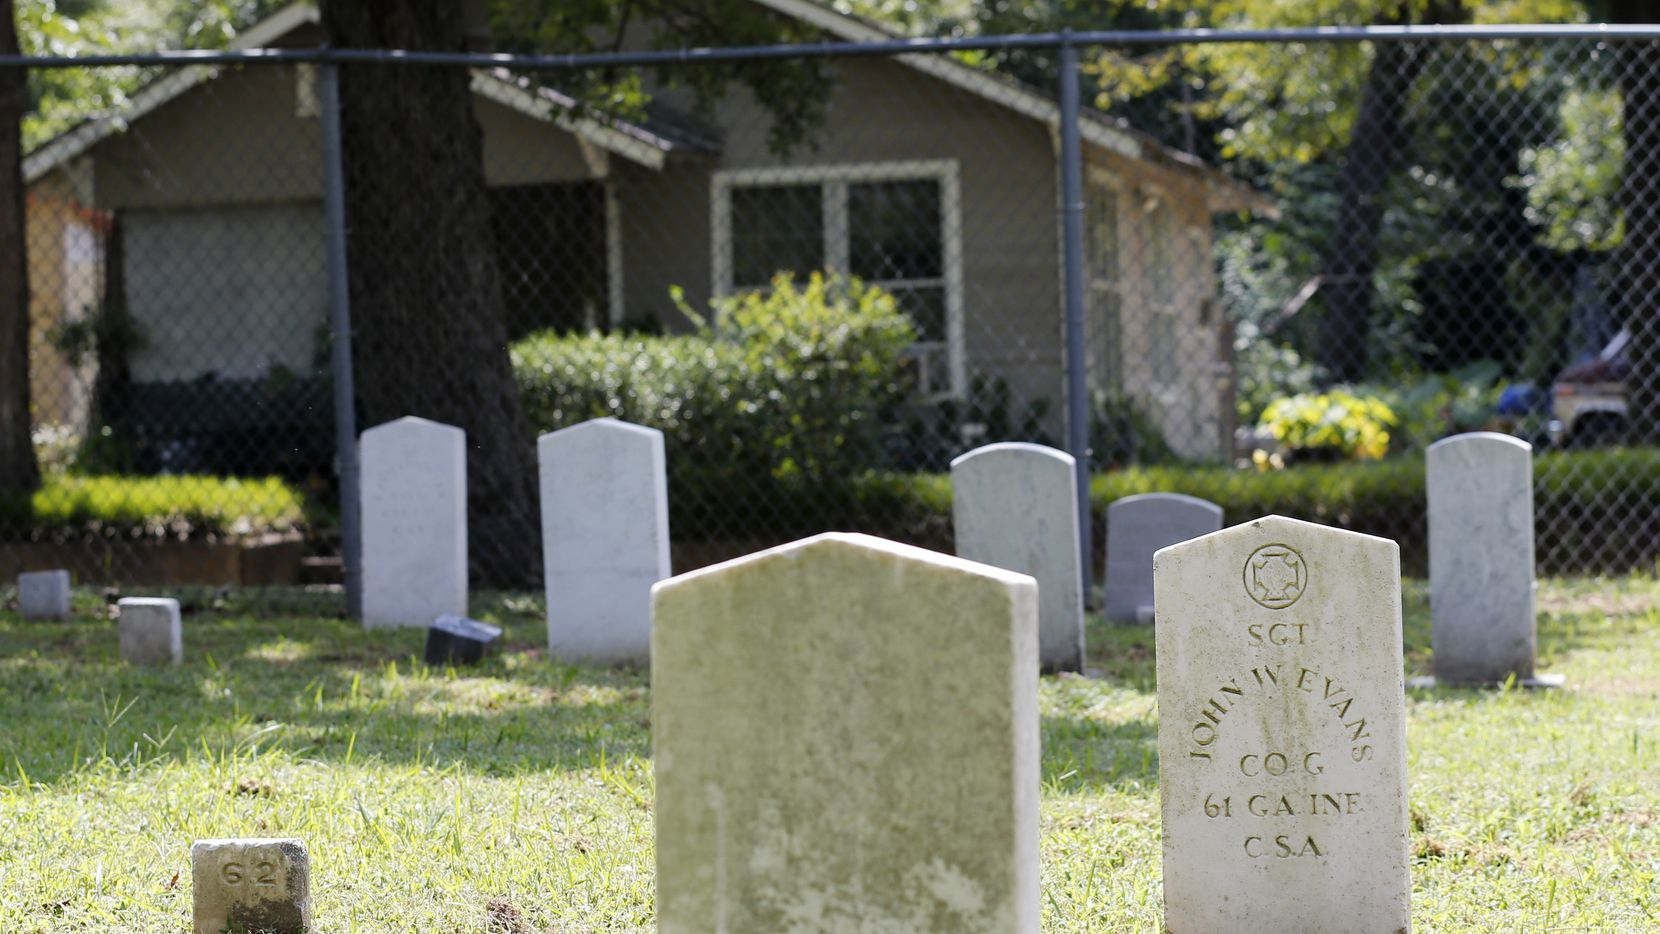 For decades, a Confederate Cemetery has existed on Electra Street, in the middle of a largely Black neighborhood in South Dallas.